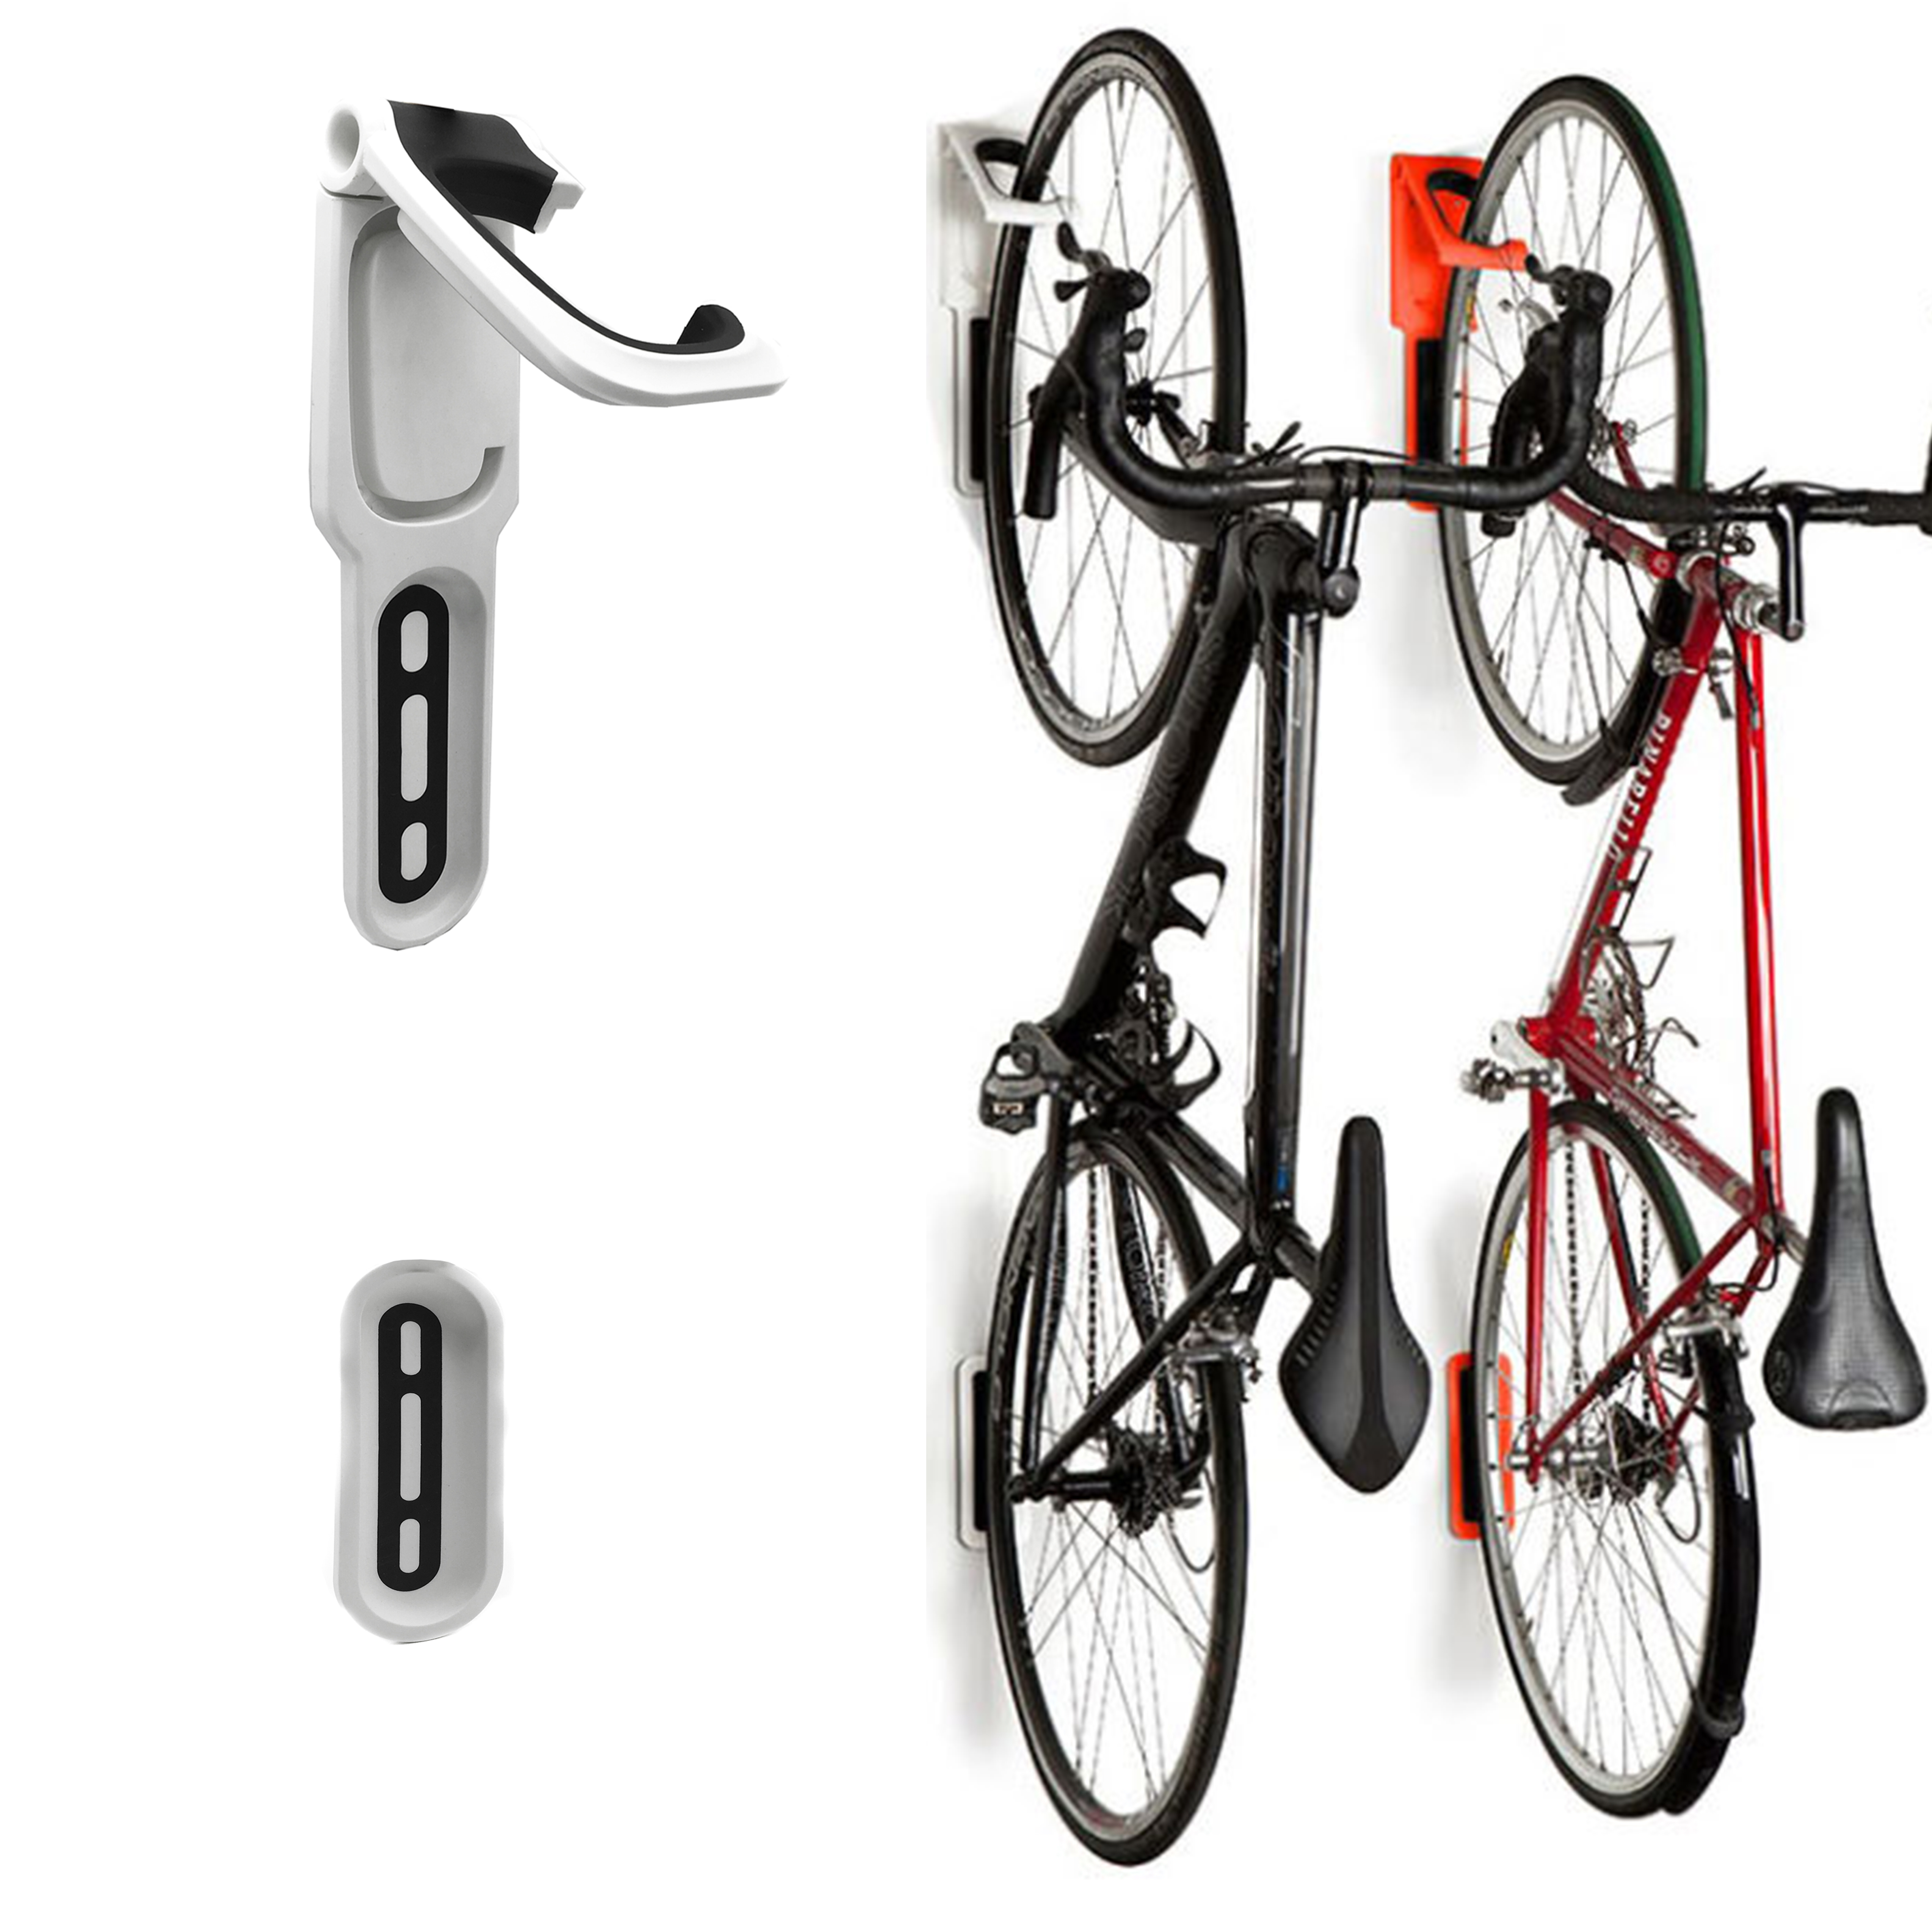 Reliancer 4 Color Foldable Vertical Bike Rack Wall Mounted Bicycle